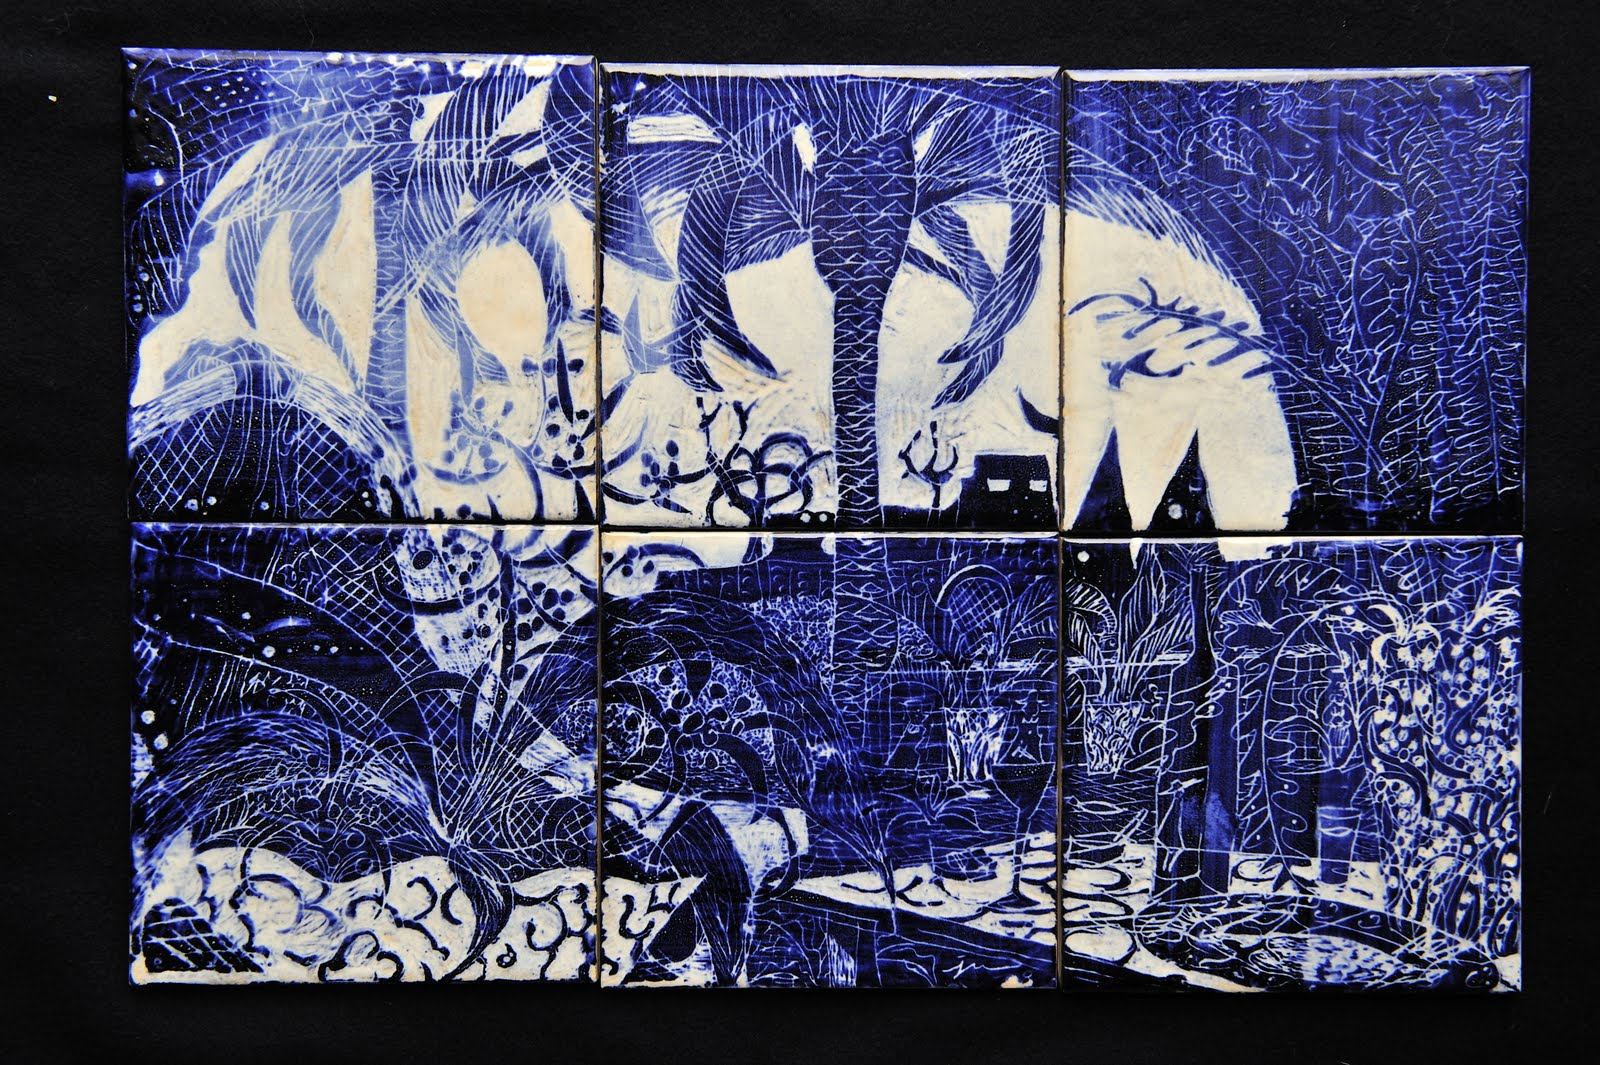 &#39;Sintra&#39; - conjunto de azulejos de Jun Shirasu